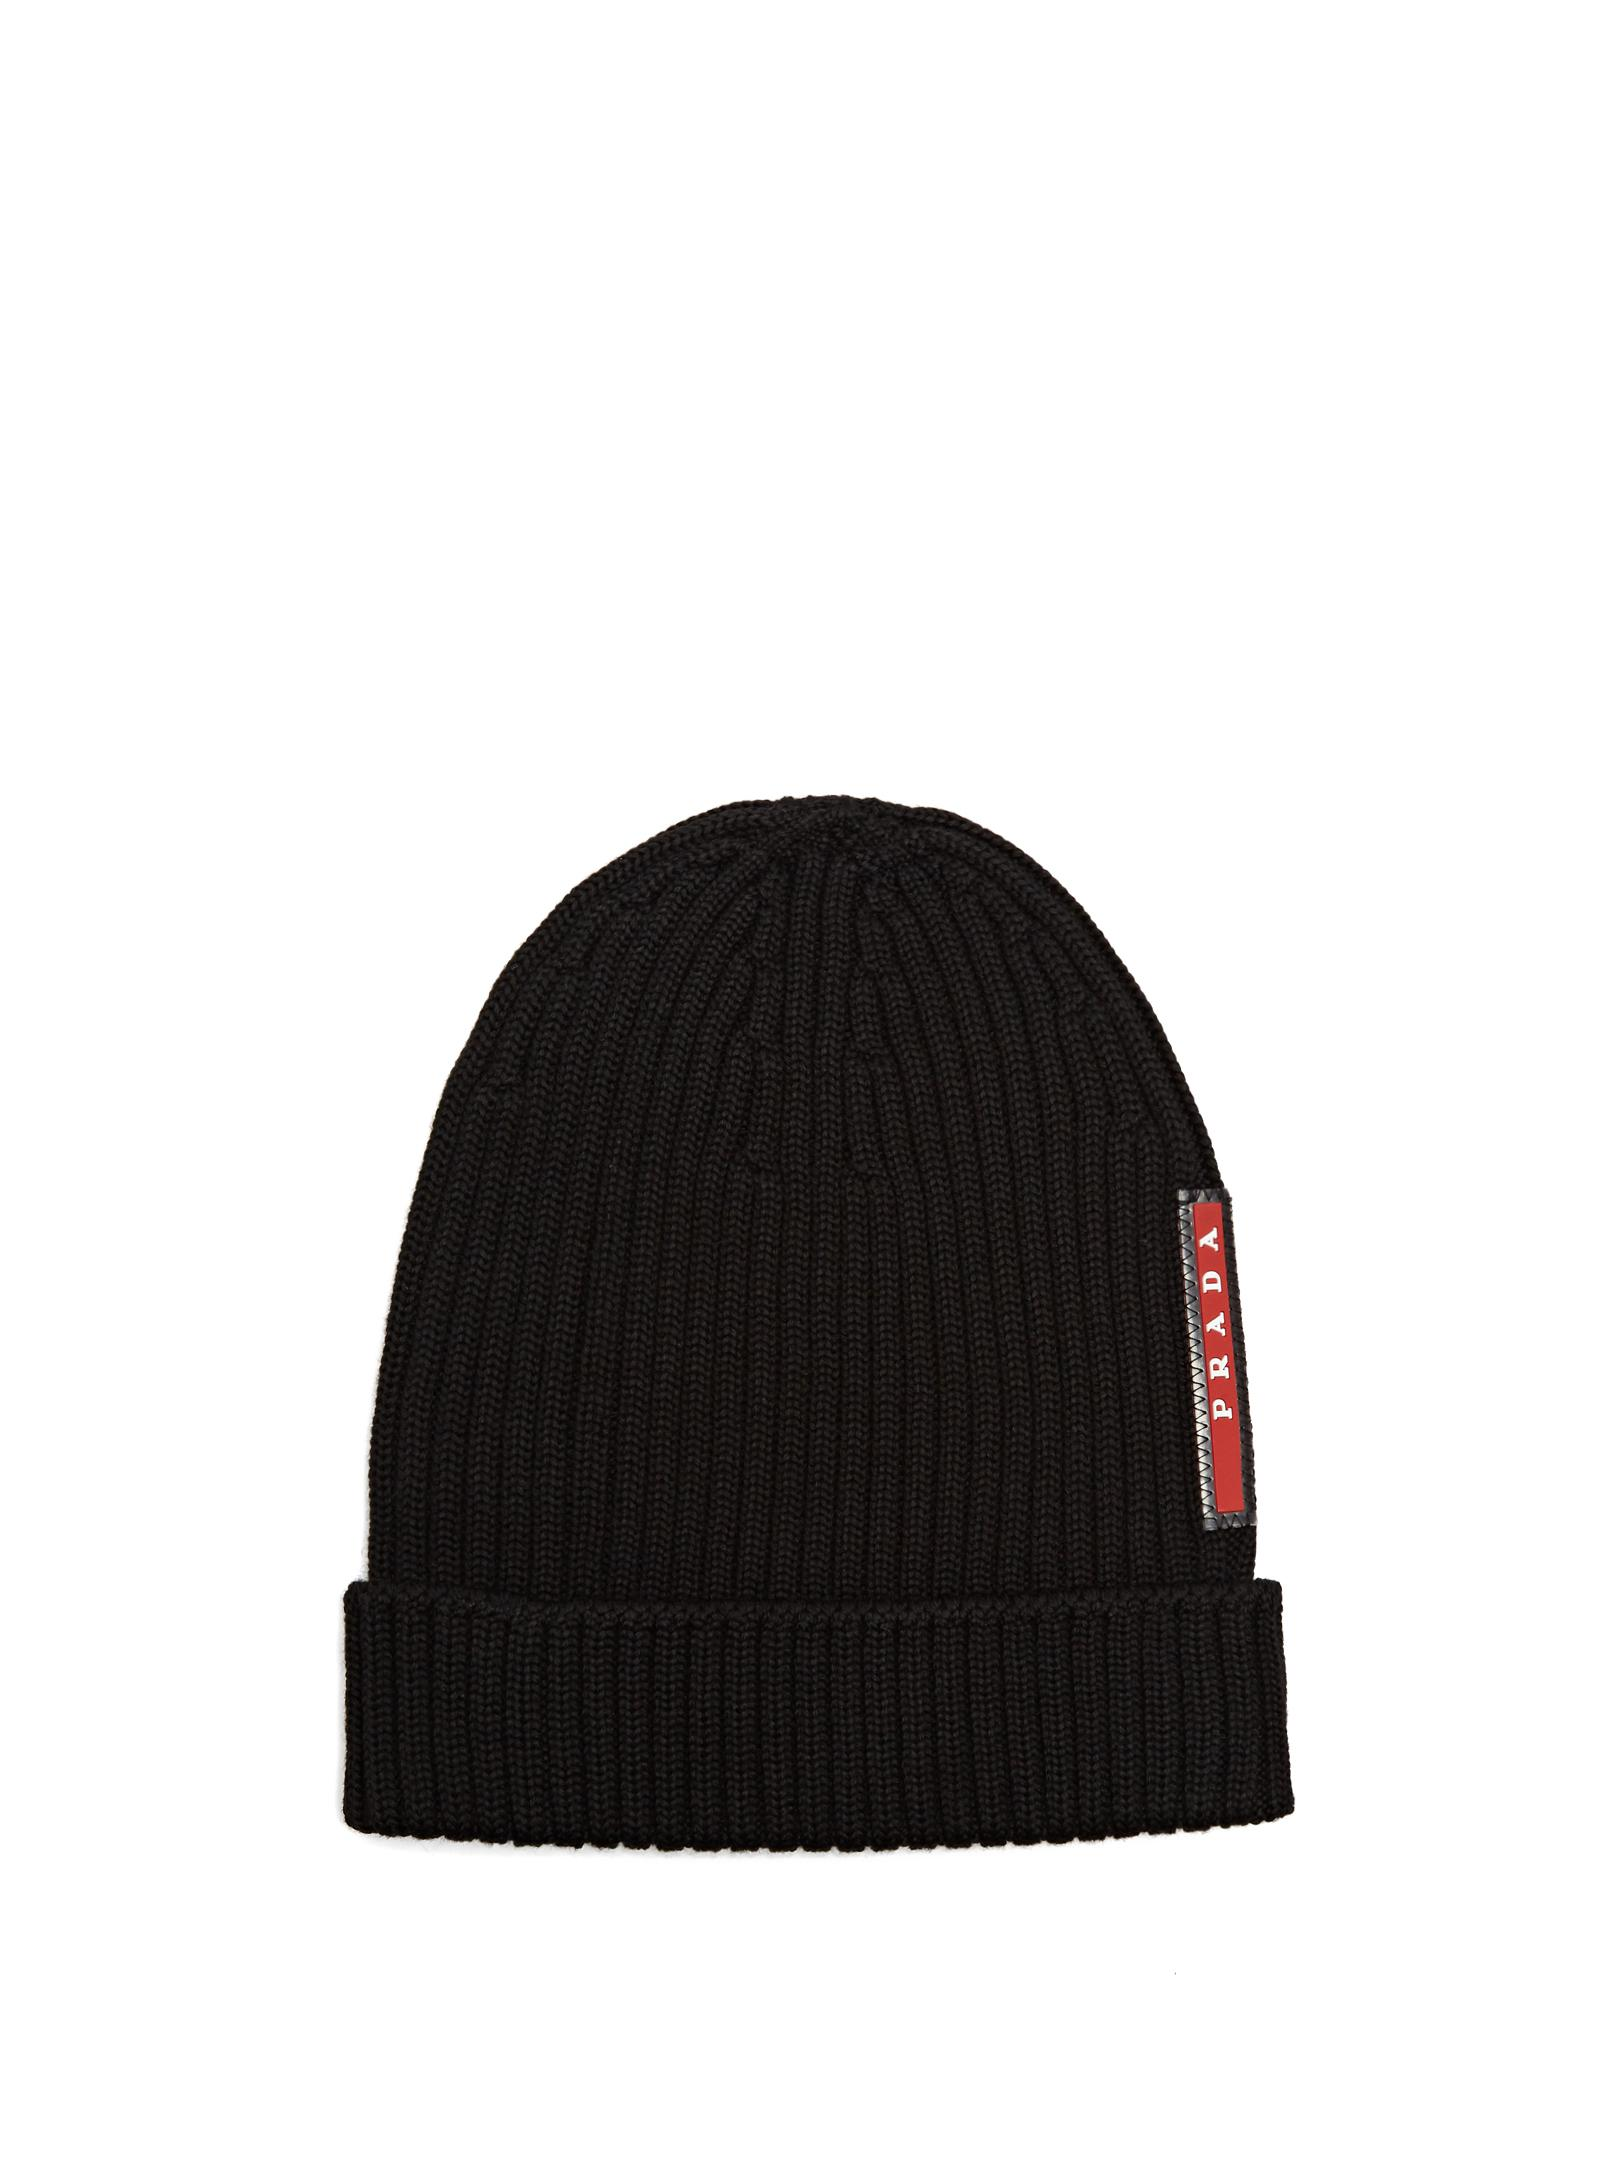 ad3457e4ad5f1 Prada Ribbed-knit Beanie Hat in Black for Men - Lyst